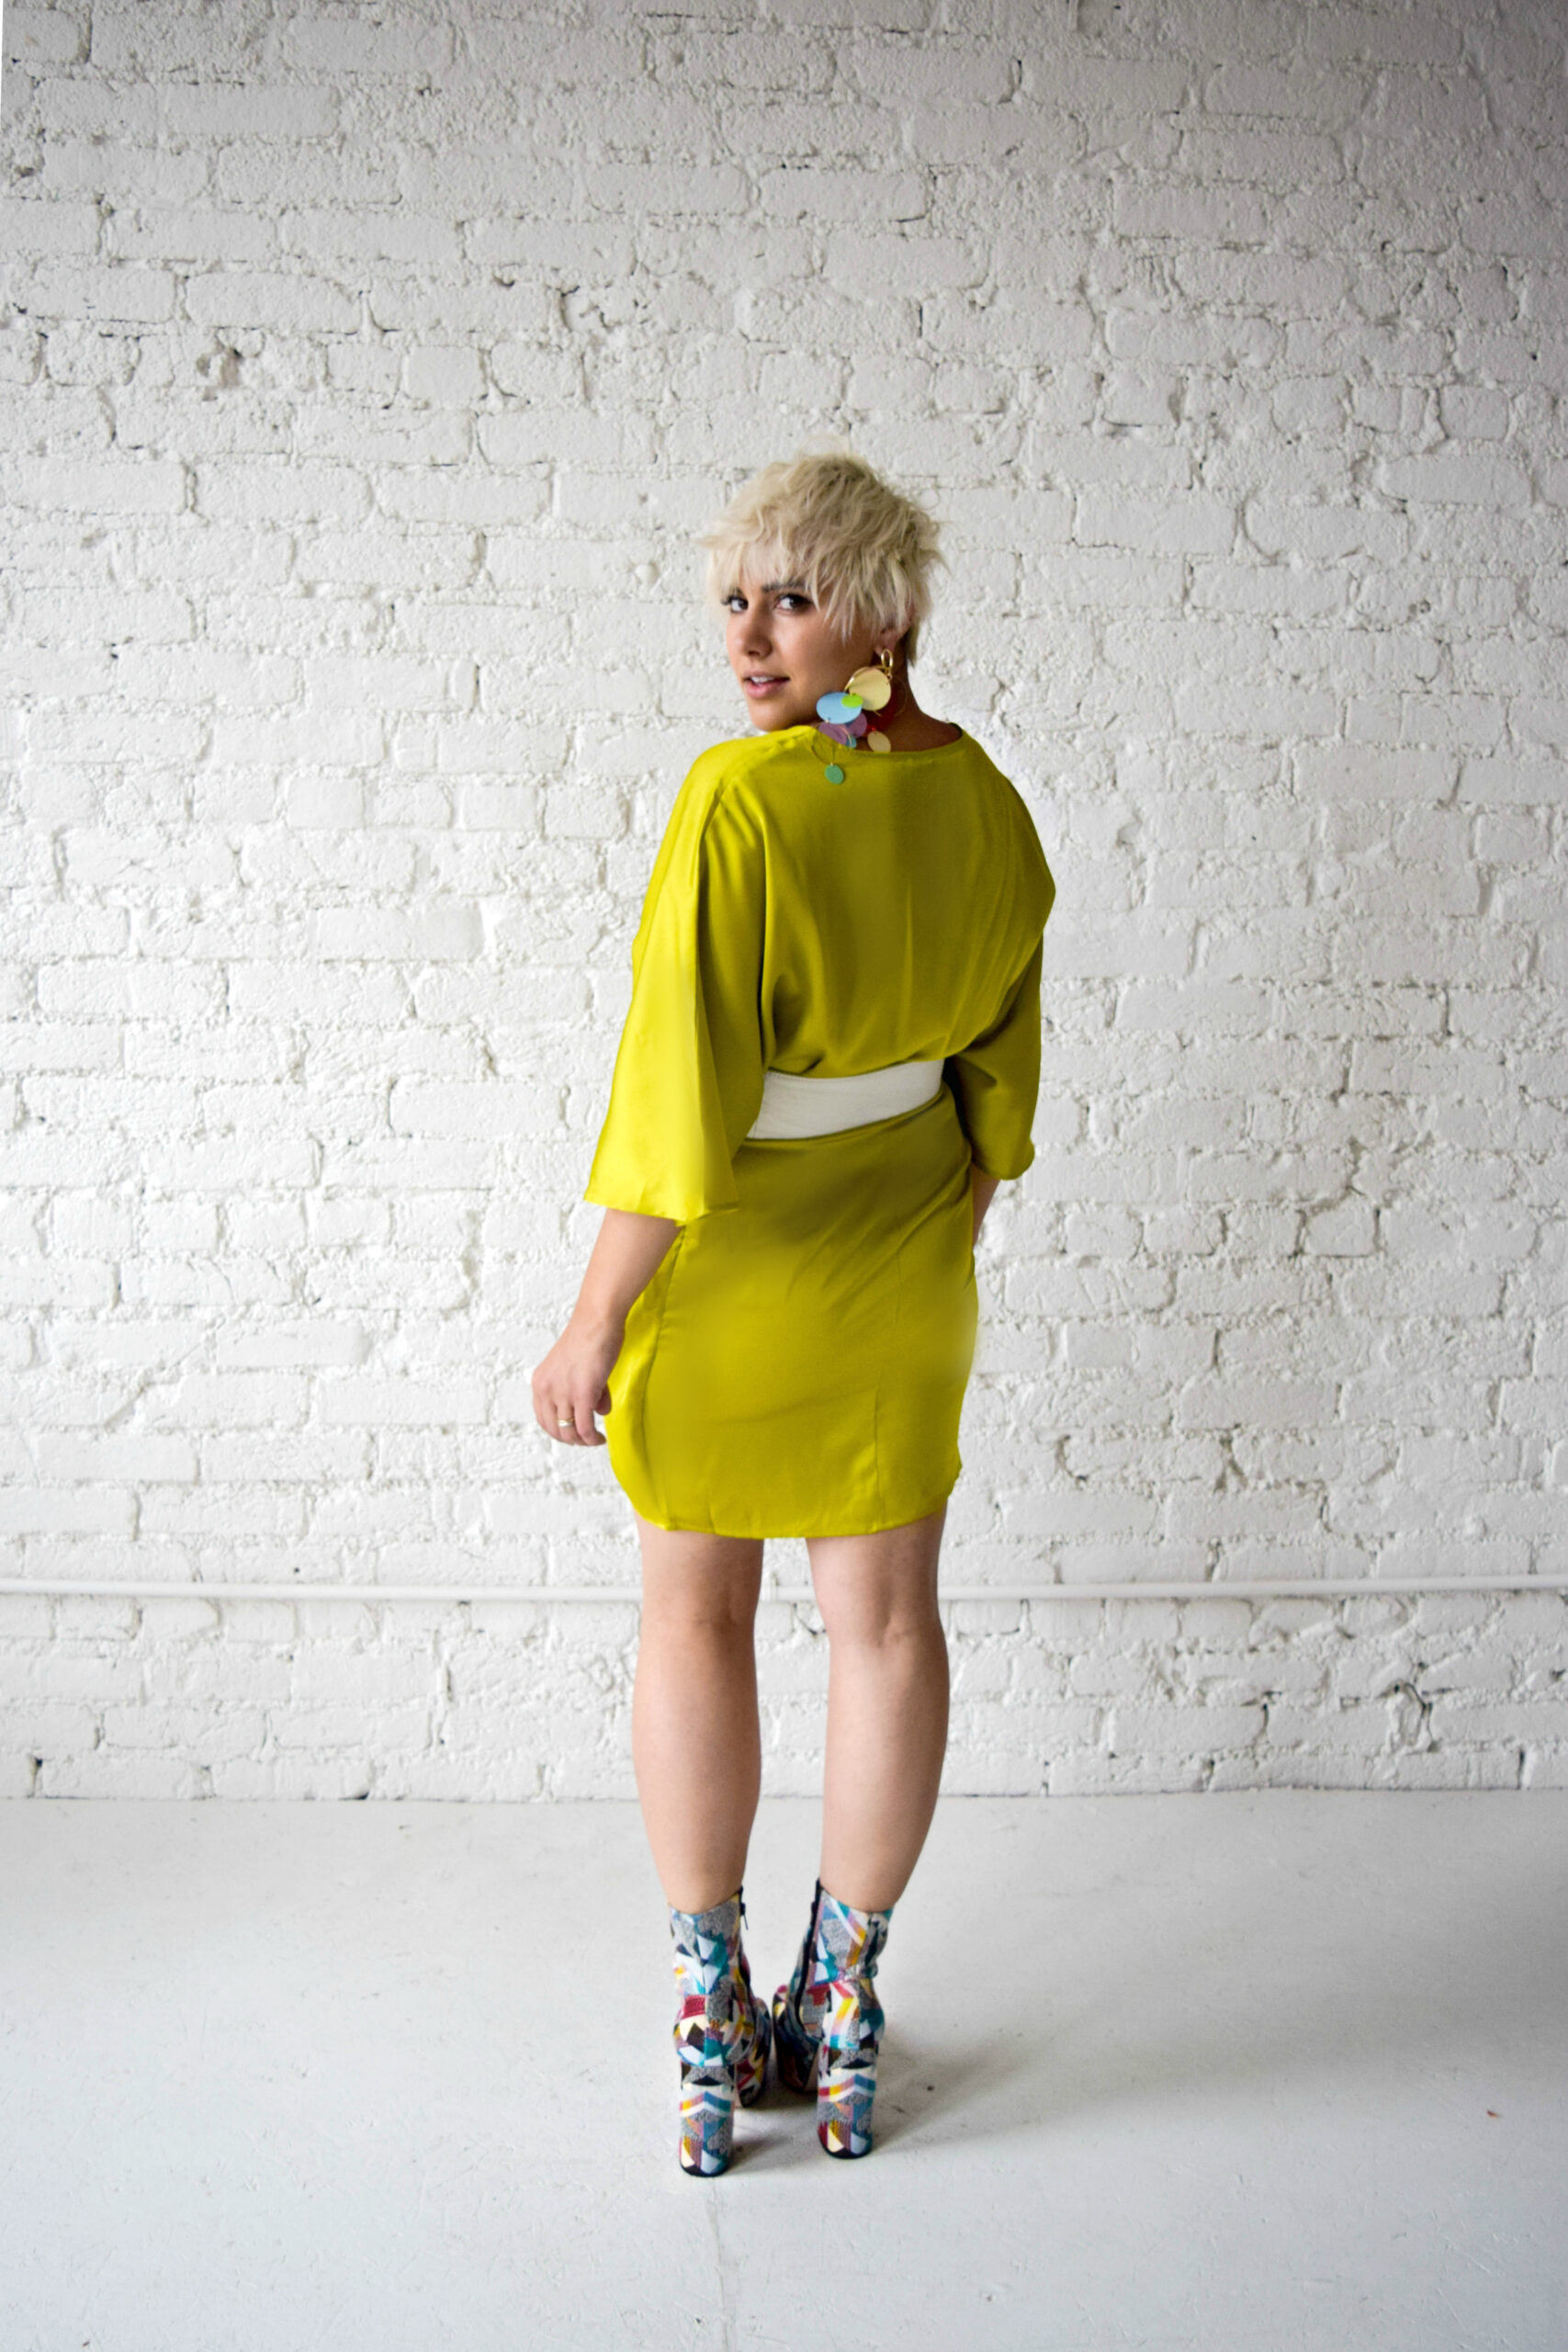 The Bombshell: Embracing Your 80's Alter-Ego Using Modern Clothing - BloggerNotBillionaire.com